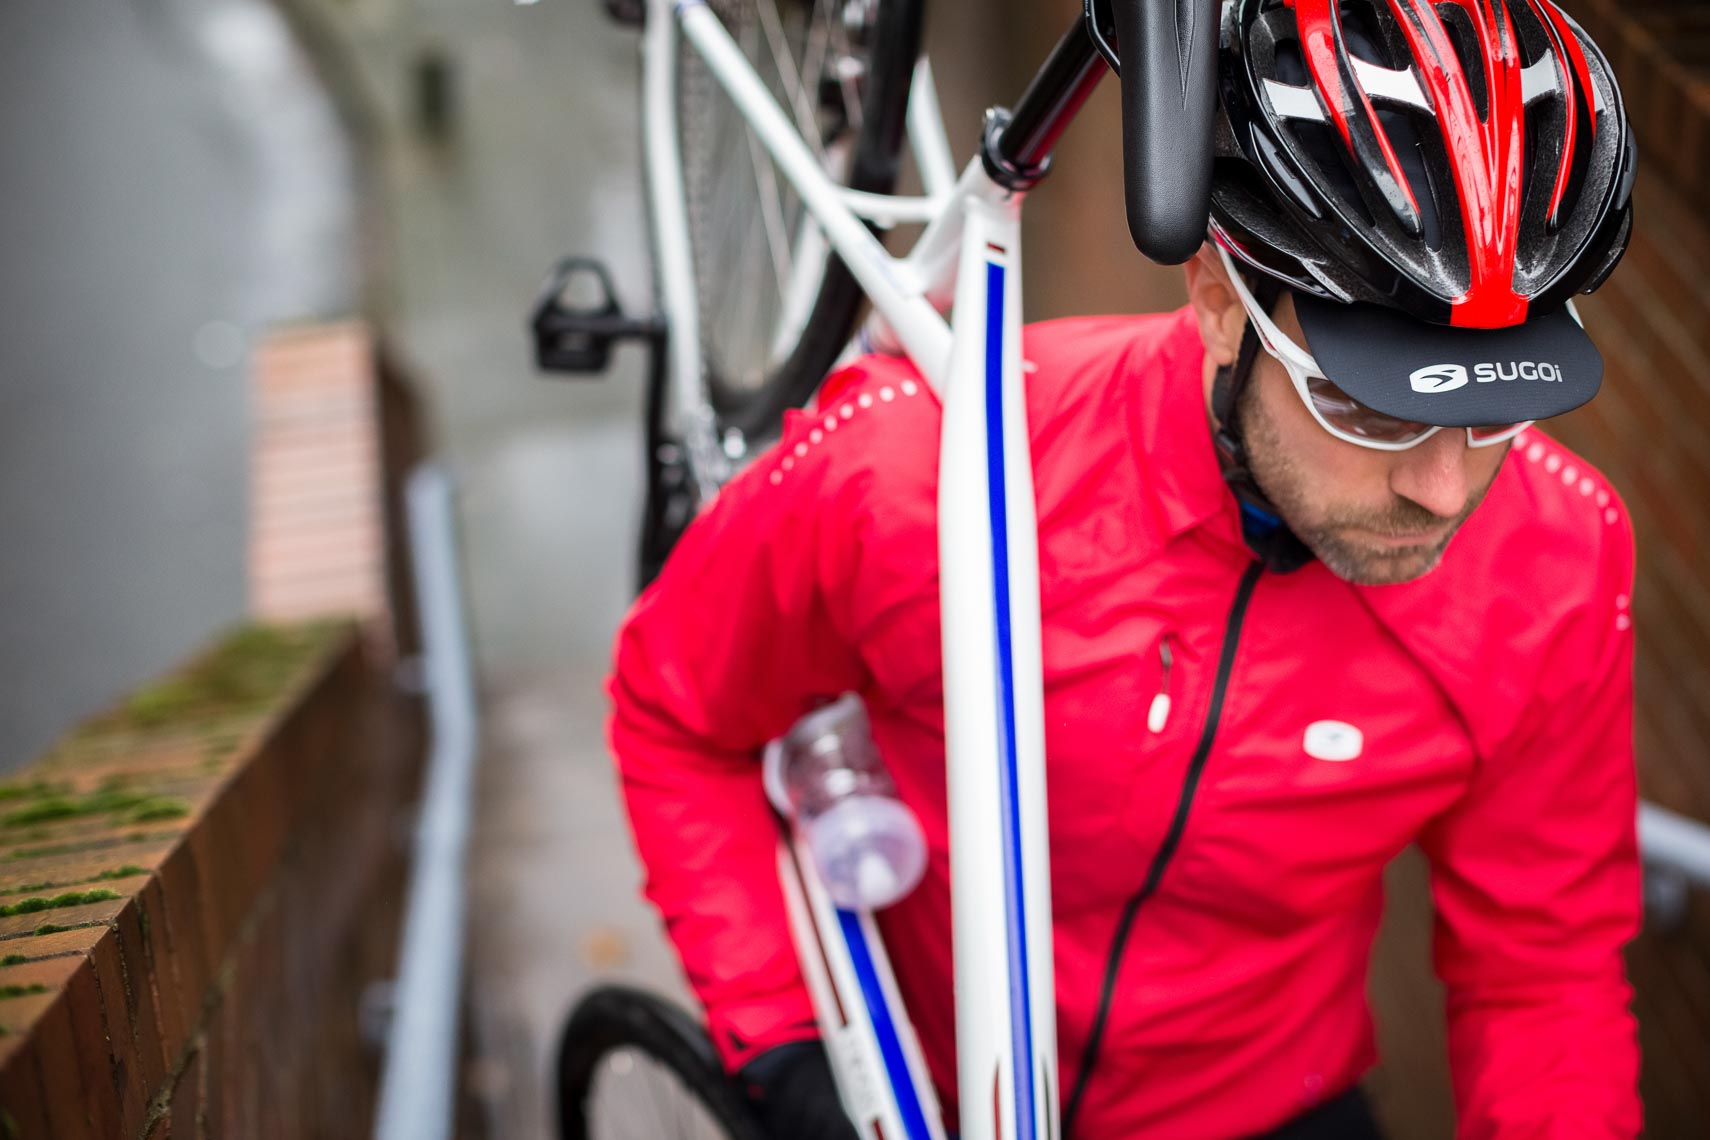 Sugoi bike jacket and helmet shown by commercial apparel and product photographer